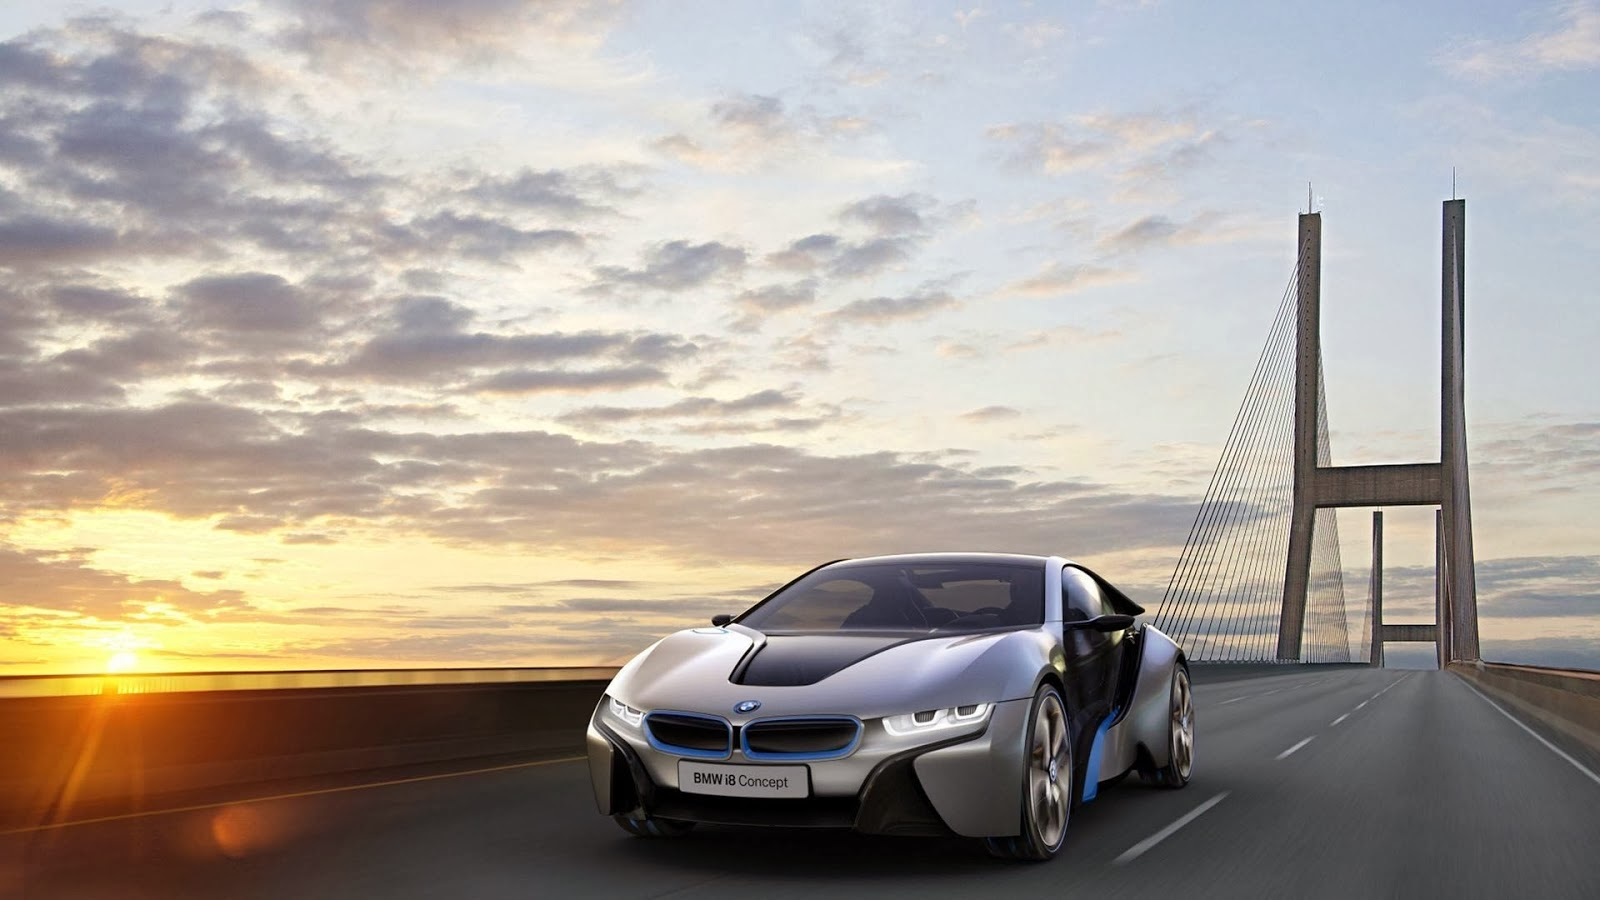 All hot informations download bmw i8 cars hd wallpapers 1080p - Car hd wallpapers 1080p download ...